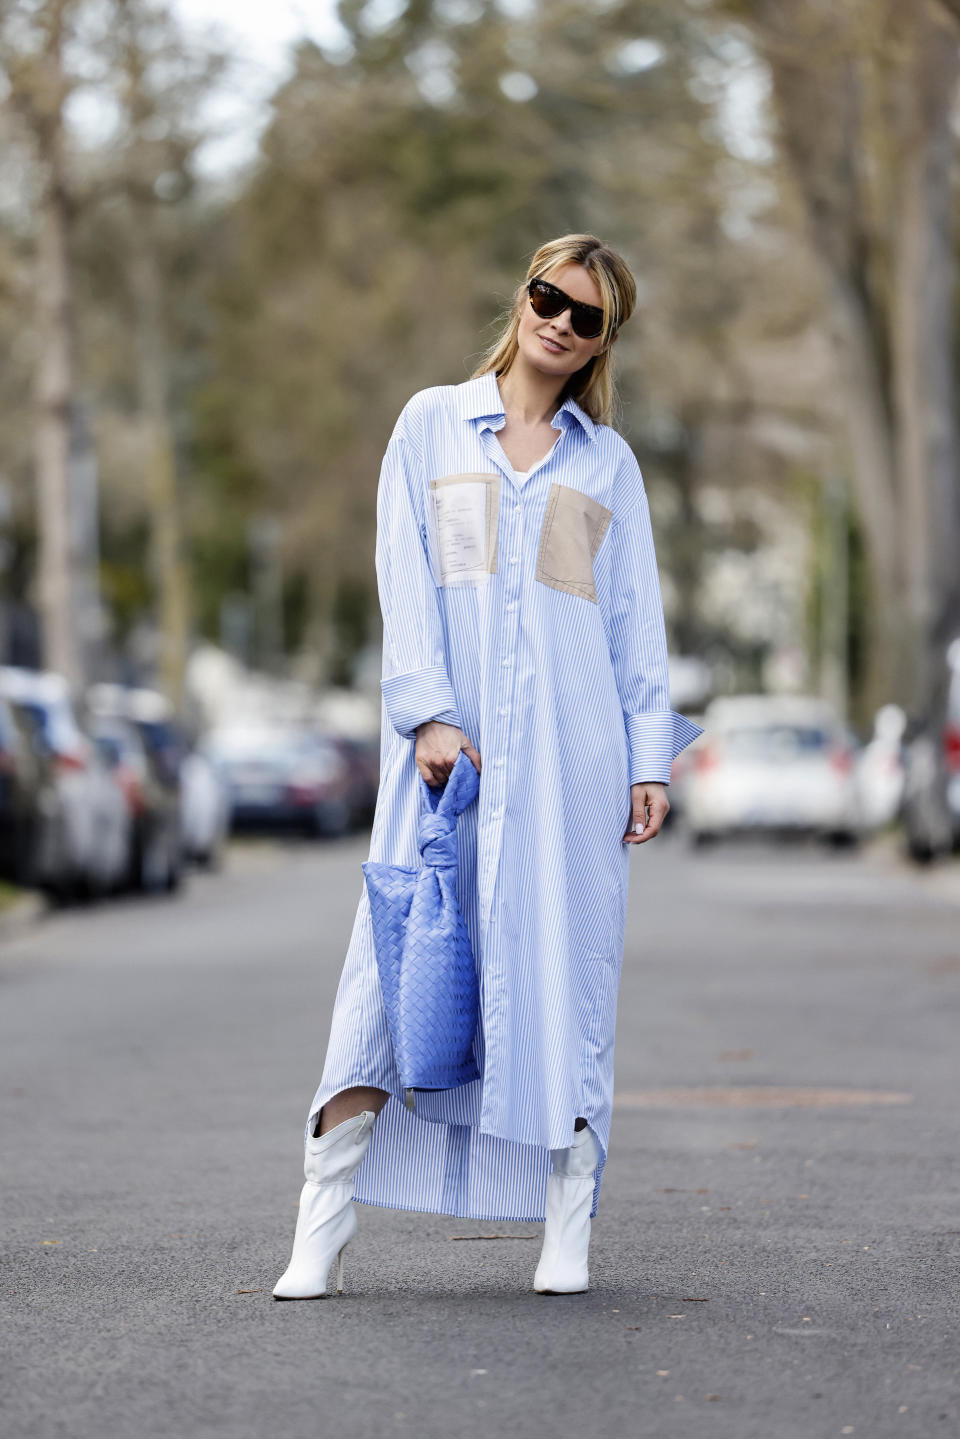 DUSSELDORF, GERMANY - MARCH 18: Influencer Gitta Banko wearing white high heel ankle booties by Malone Souliers, a light blue and white striped long blouse dress by Balossa, a blue bag by Bottega Veneta and sunglasses by Bottega Veneta during a street style shooting on March 18, 2021 in Dusseldorf, Germany. (Photo by Streetstyleshooters/Getty Images)